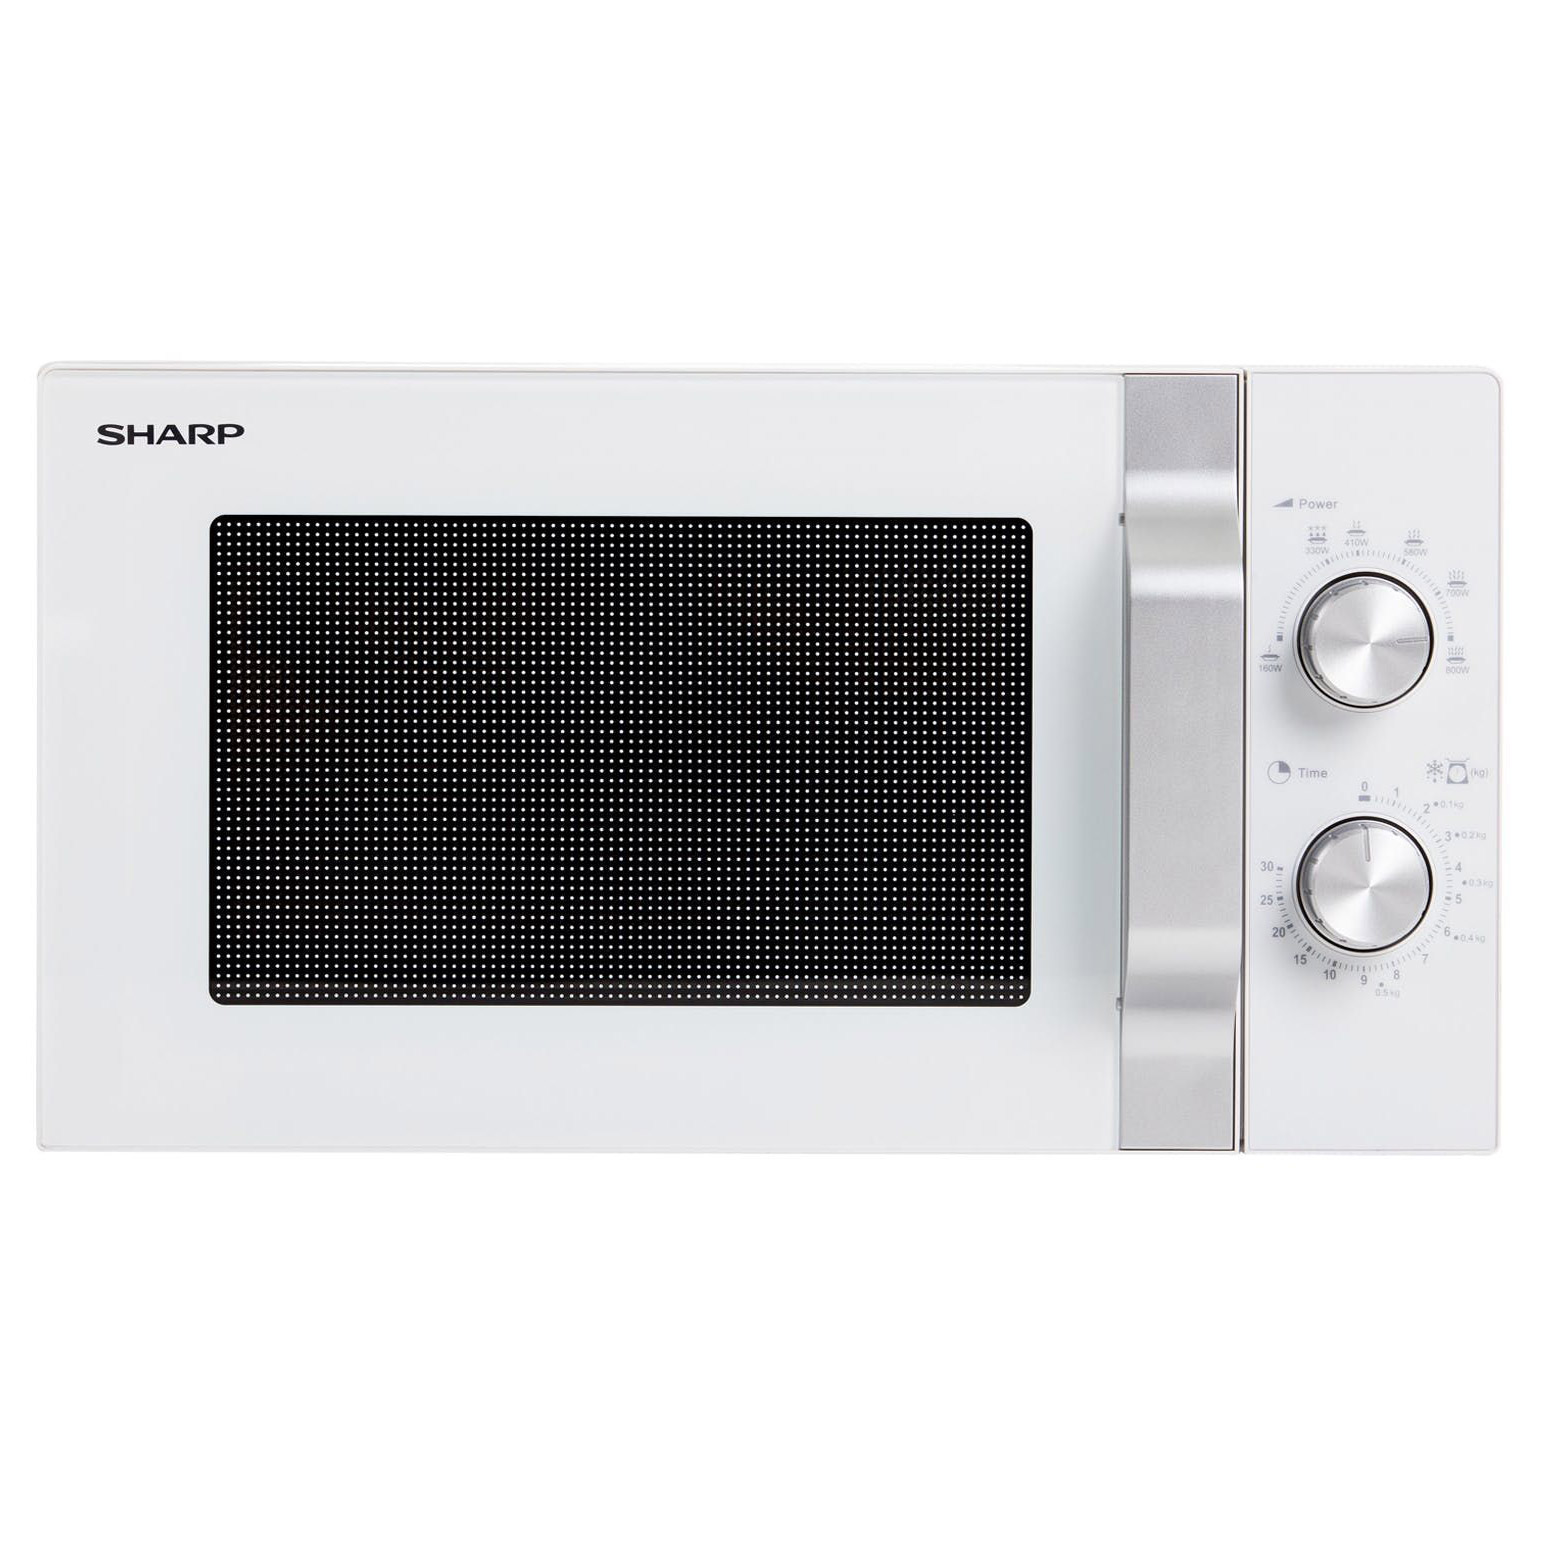 Sharp R204wm Compact Microwave Oven In White 20l 800w Manual